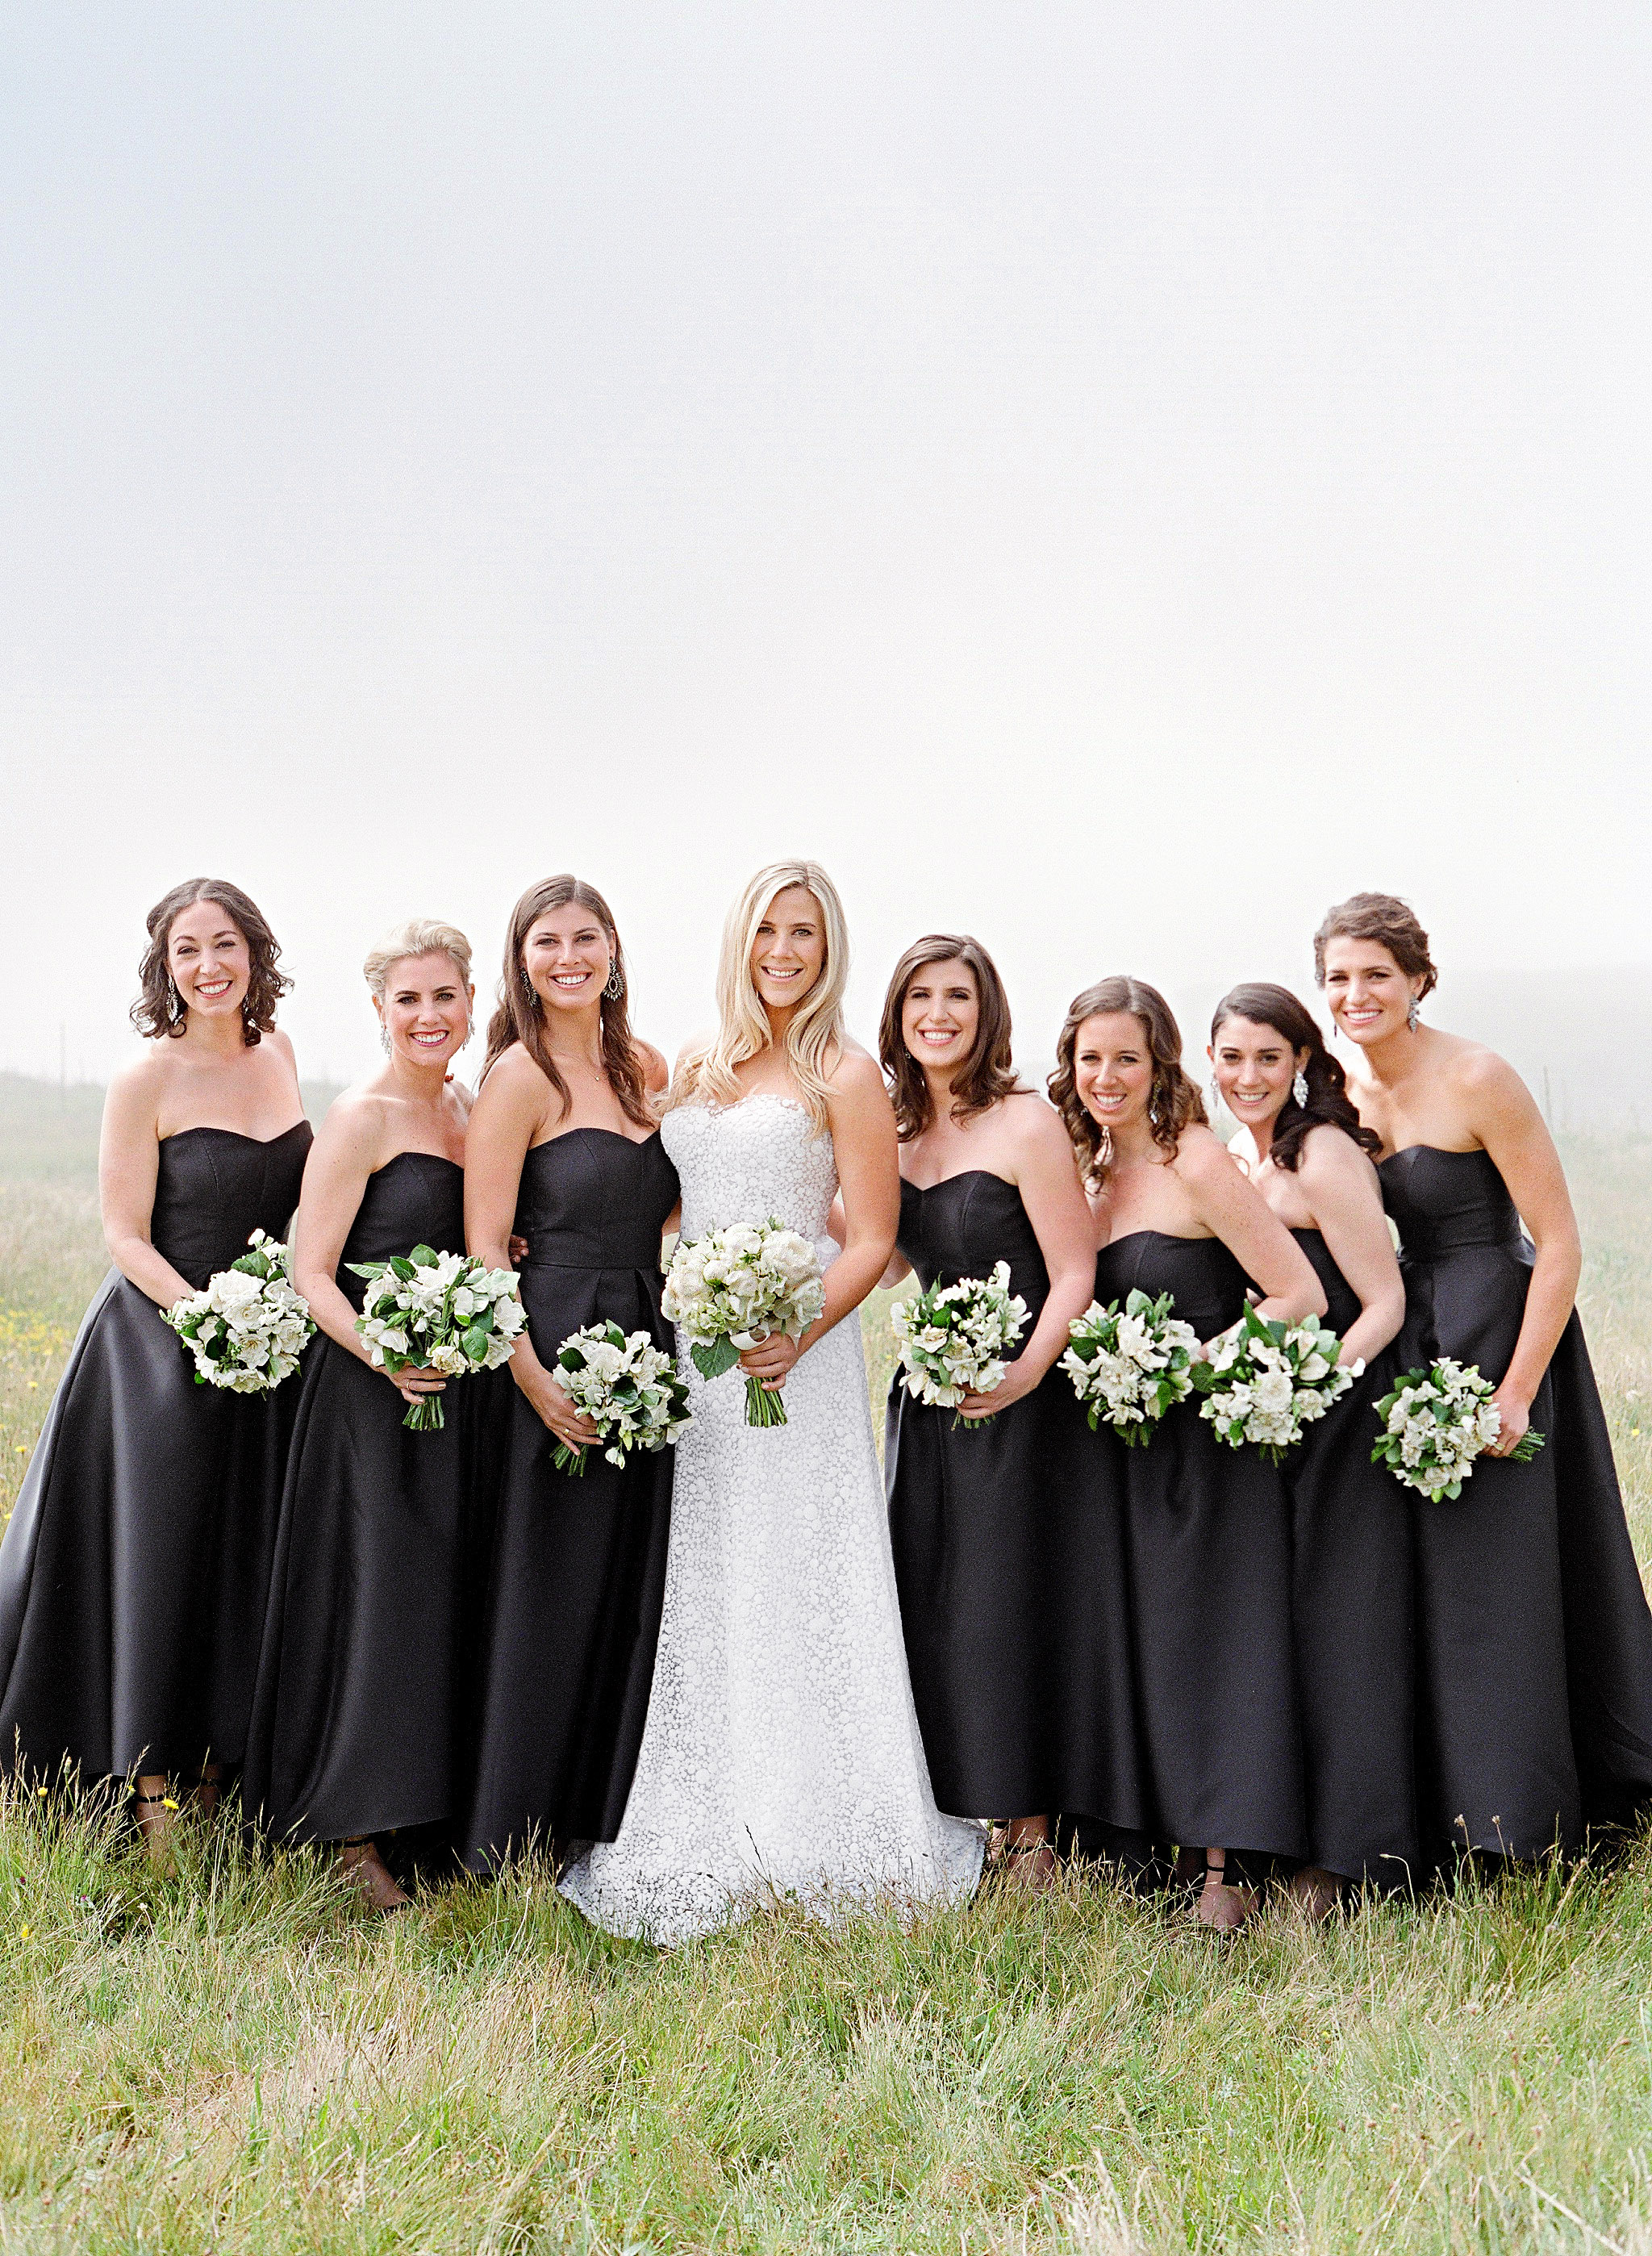 whitney zach wedding bridesmaids black strapless dresses